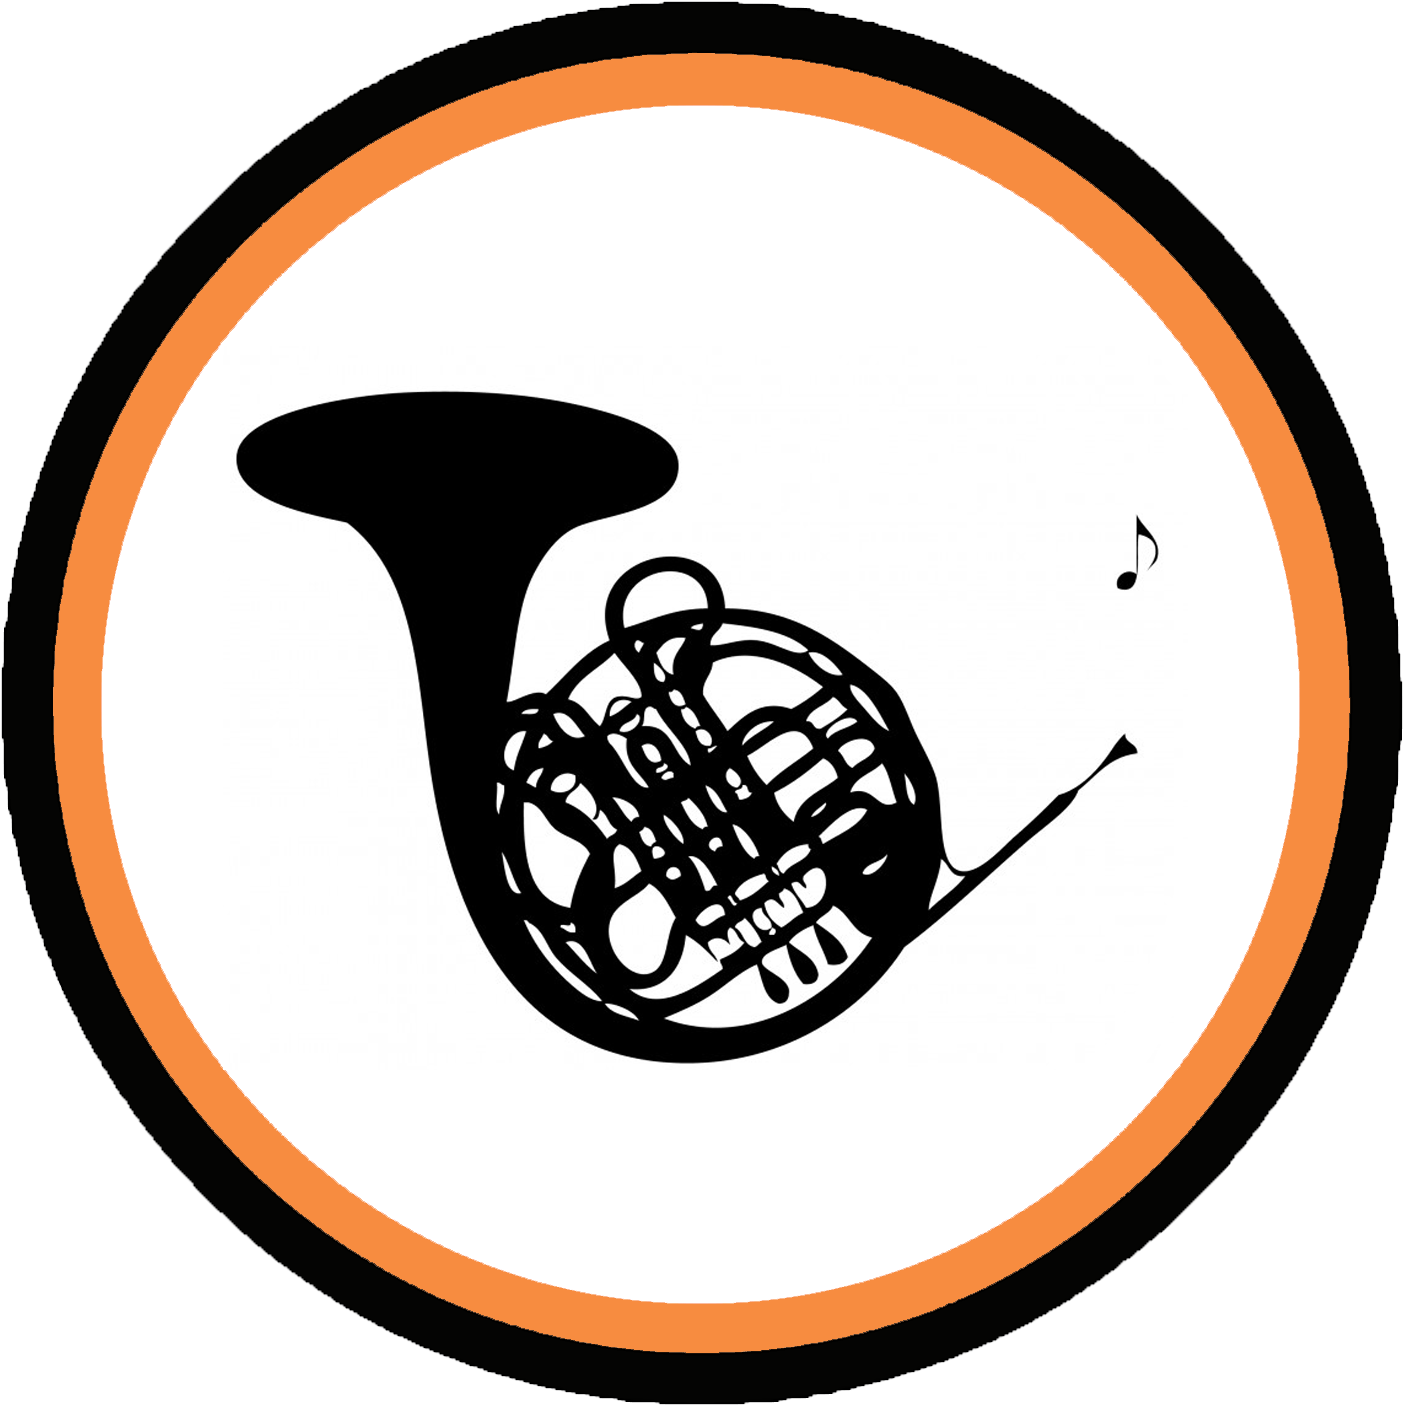 Horn clipart musical intrument. Repairs prince music company